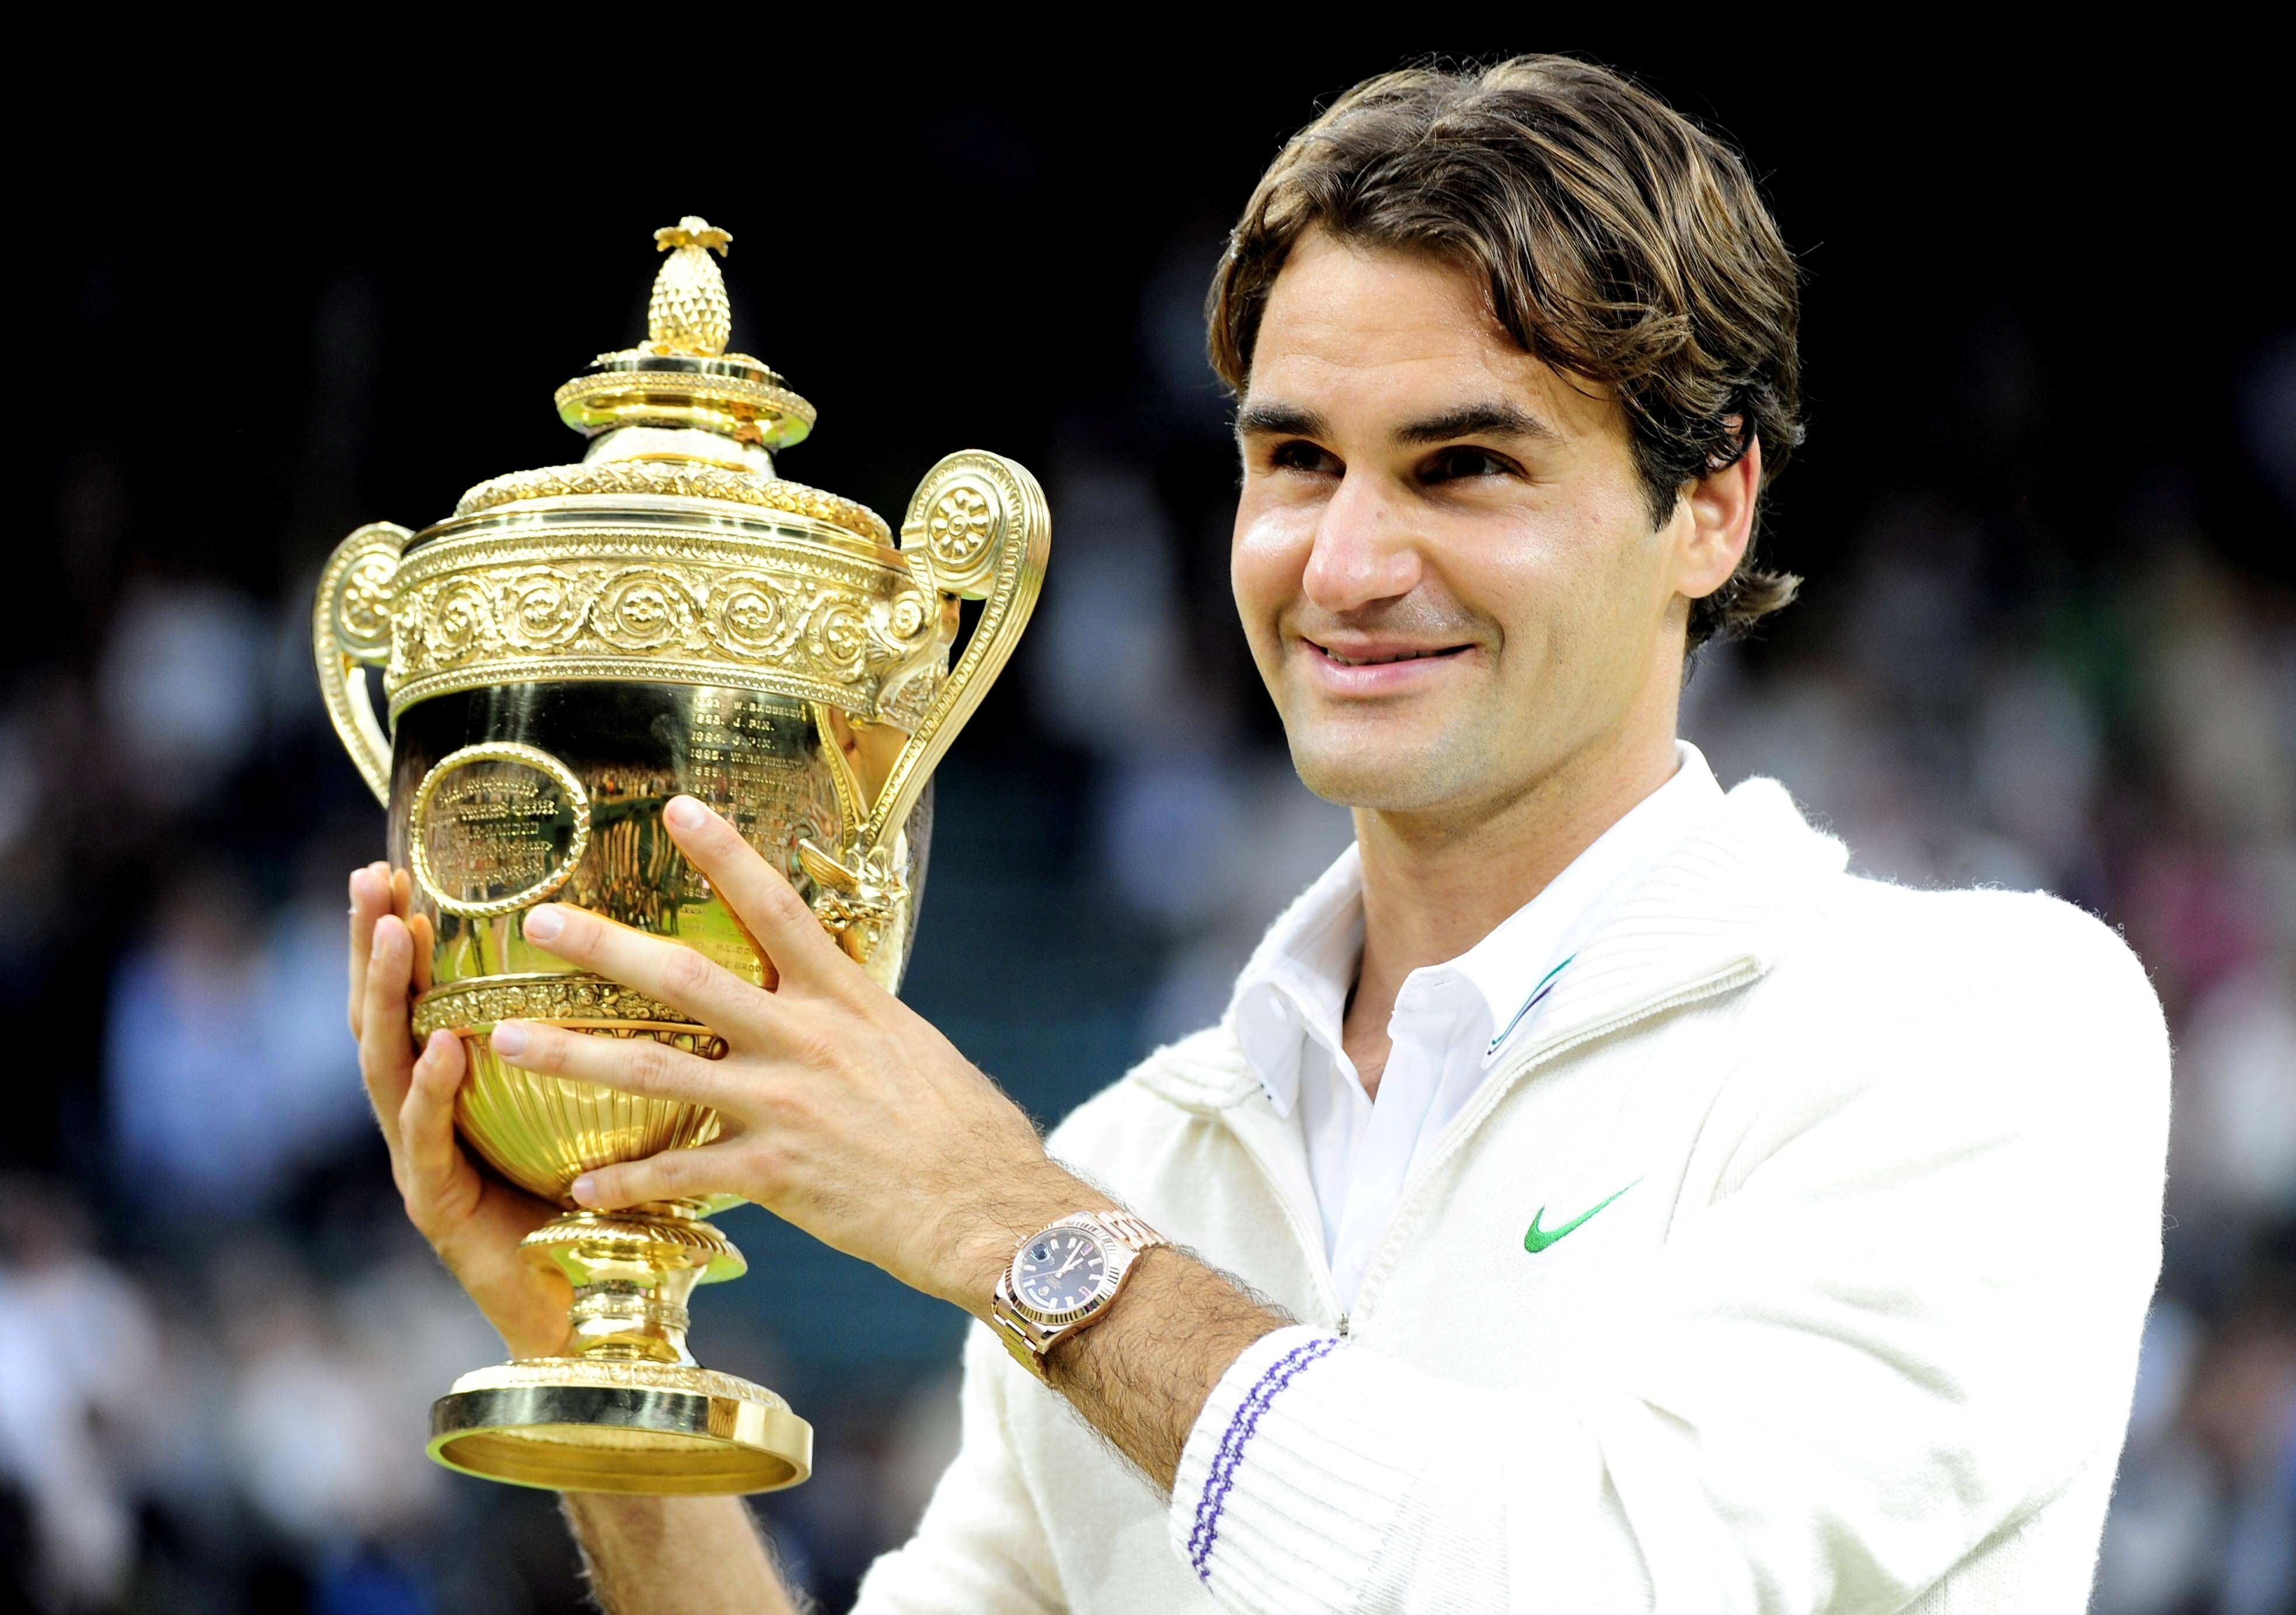 Roger federer with winning cup wallpapers hd wallpapers tennis wallpapers previous wallpaper roger federer voltagebd Image collections